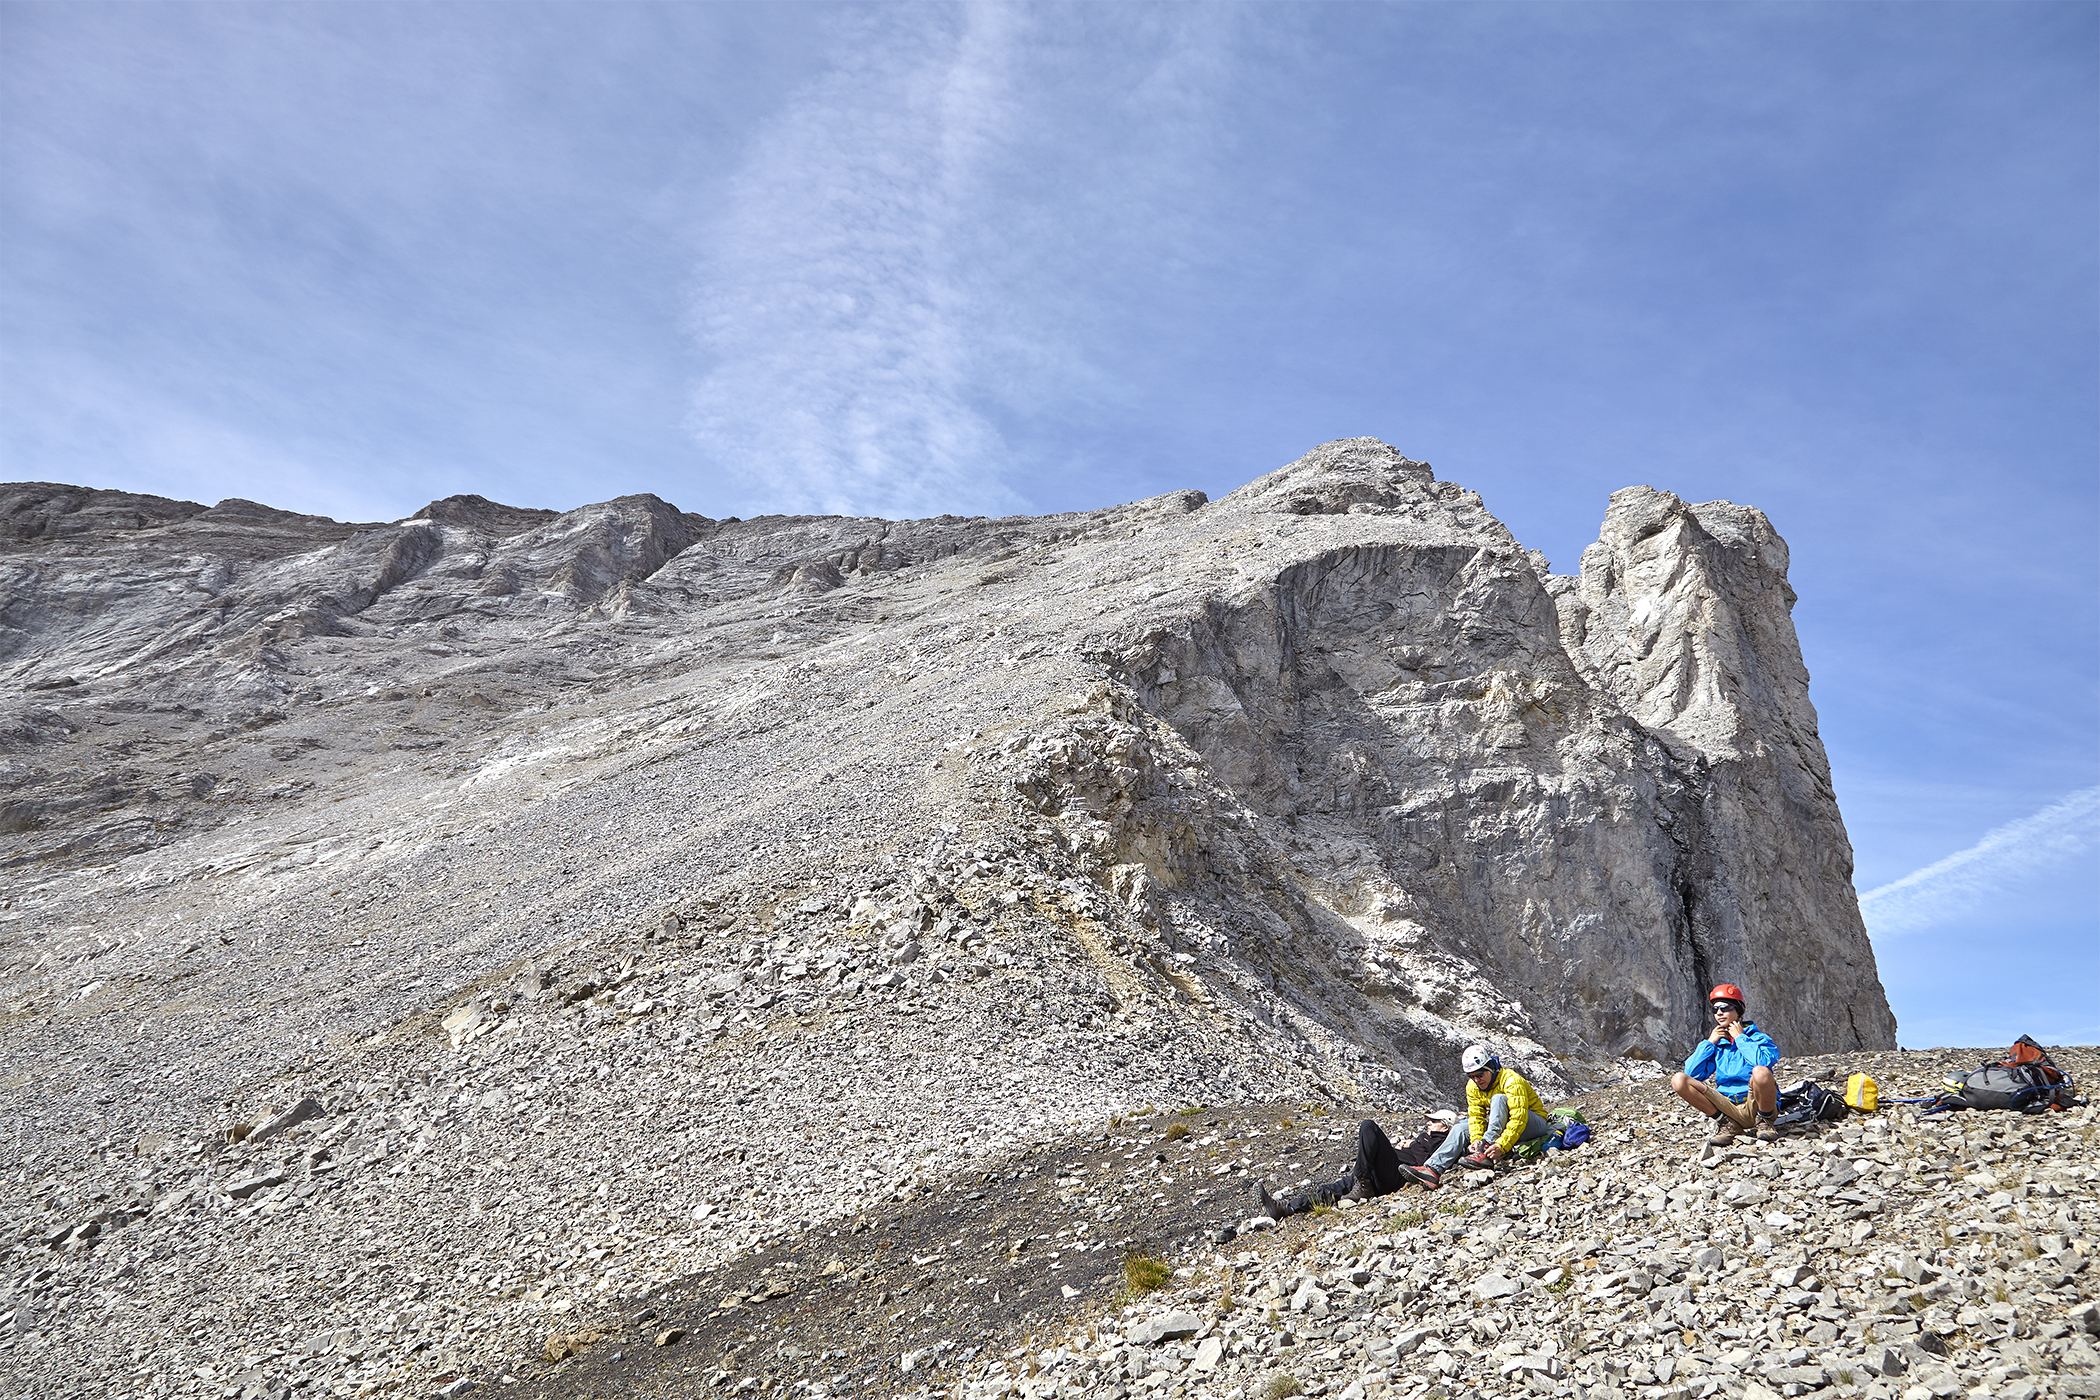 Milan and Yuri get ready for the steep ascent up Mount Tyrwhitt.